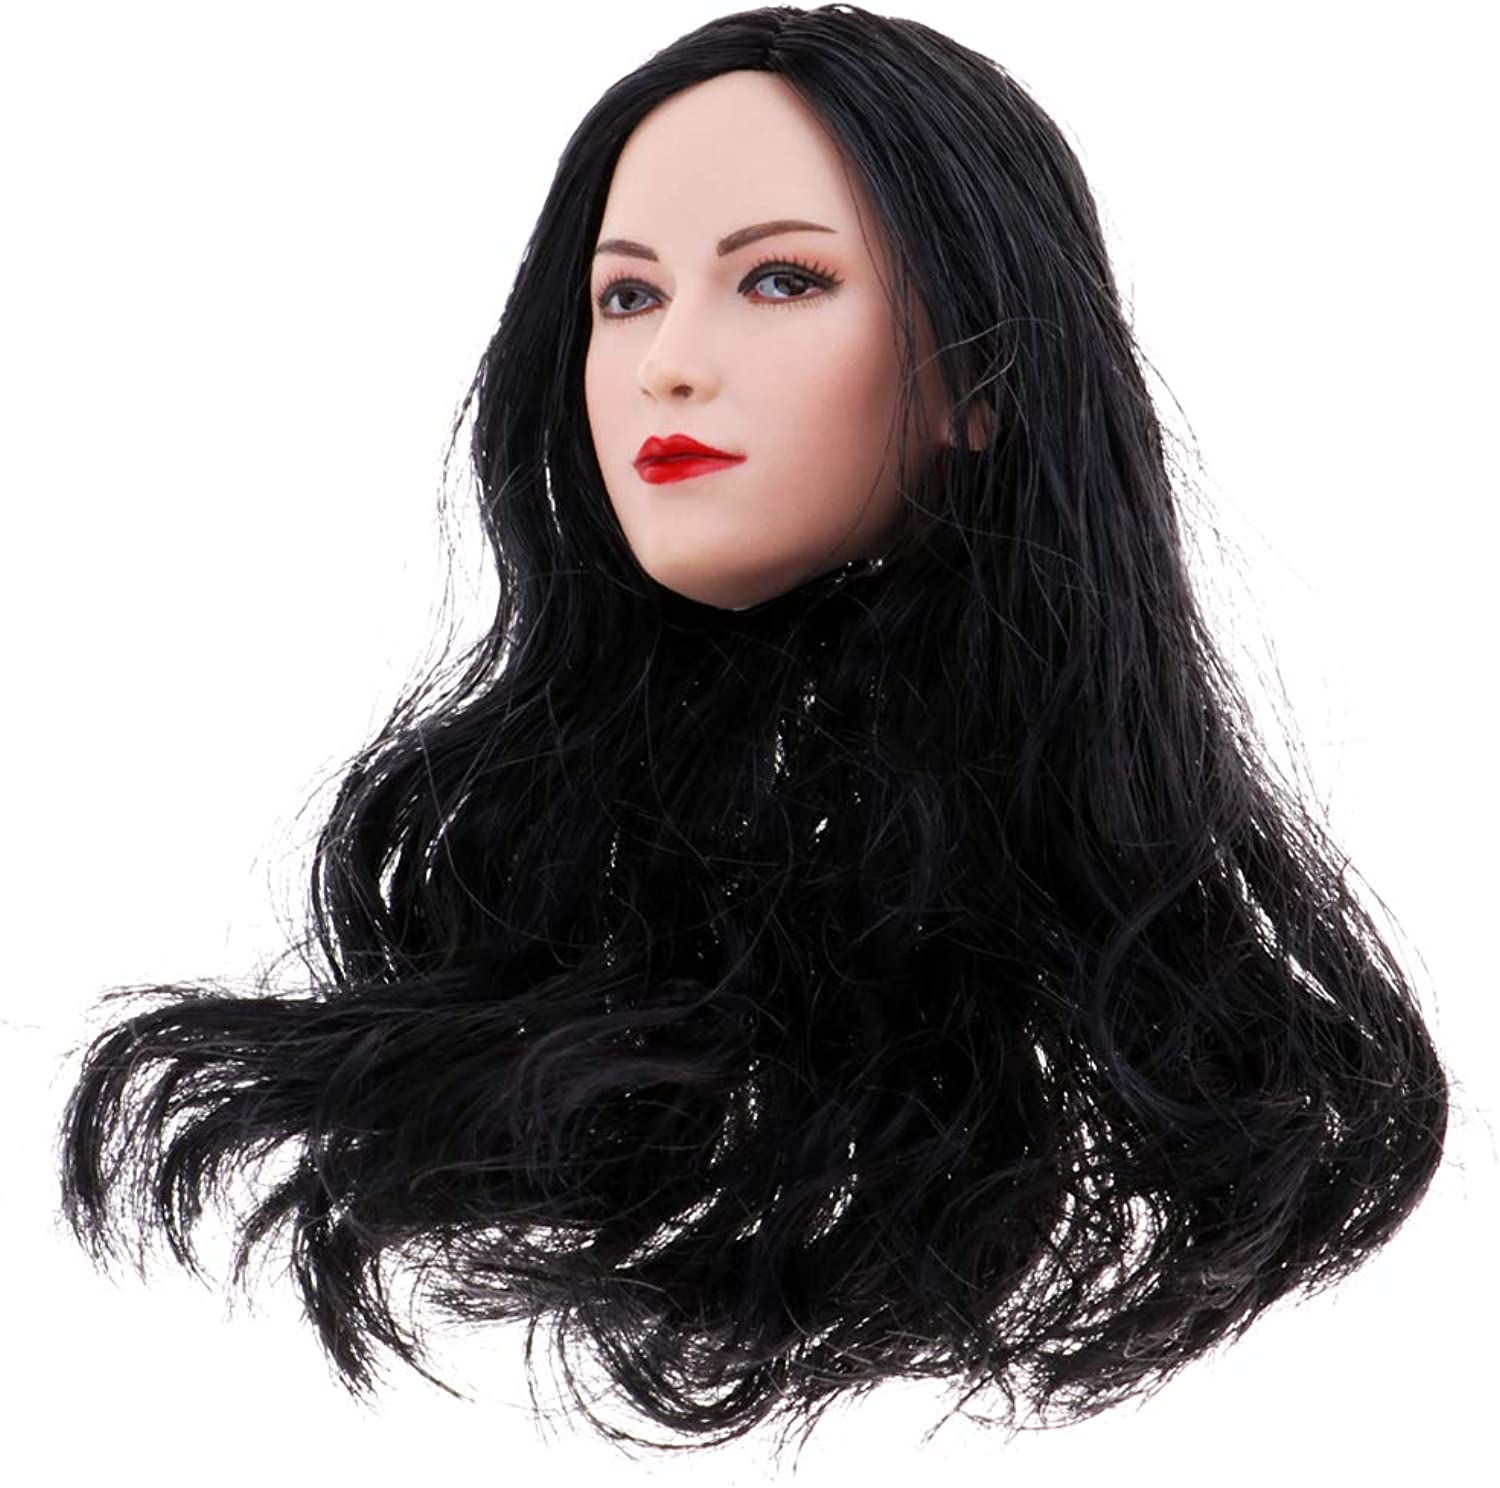 Baoblaze 1 6 Scale Lady Head Sculpture Black Long Hair for 12'' Phicen Toy Accessory